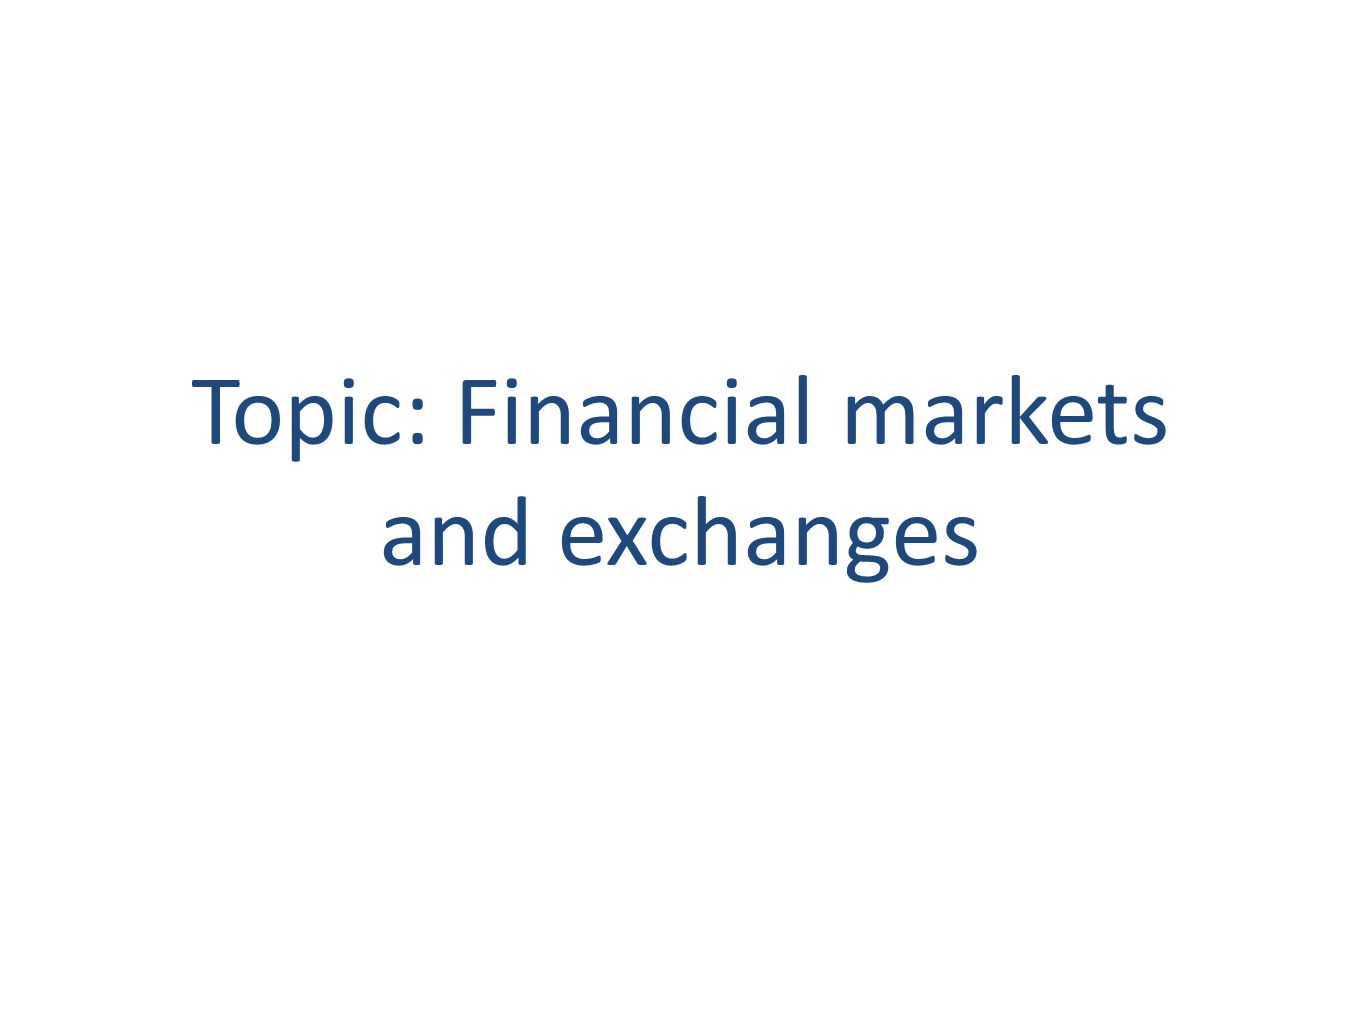 Topic: Financial markets and exchanges